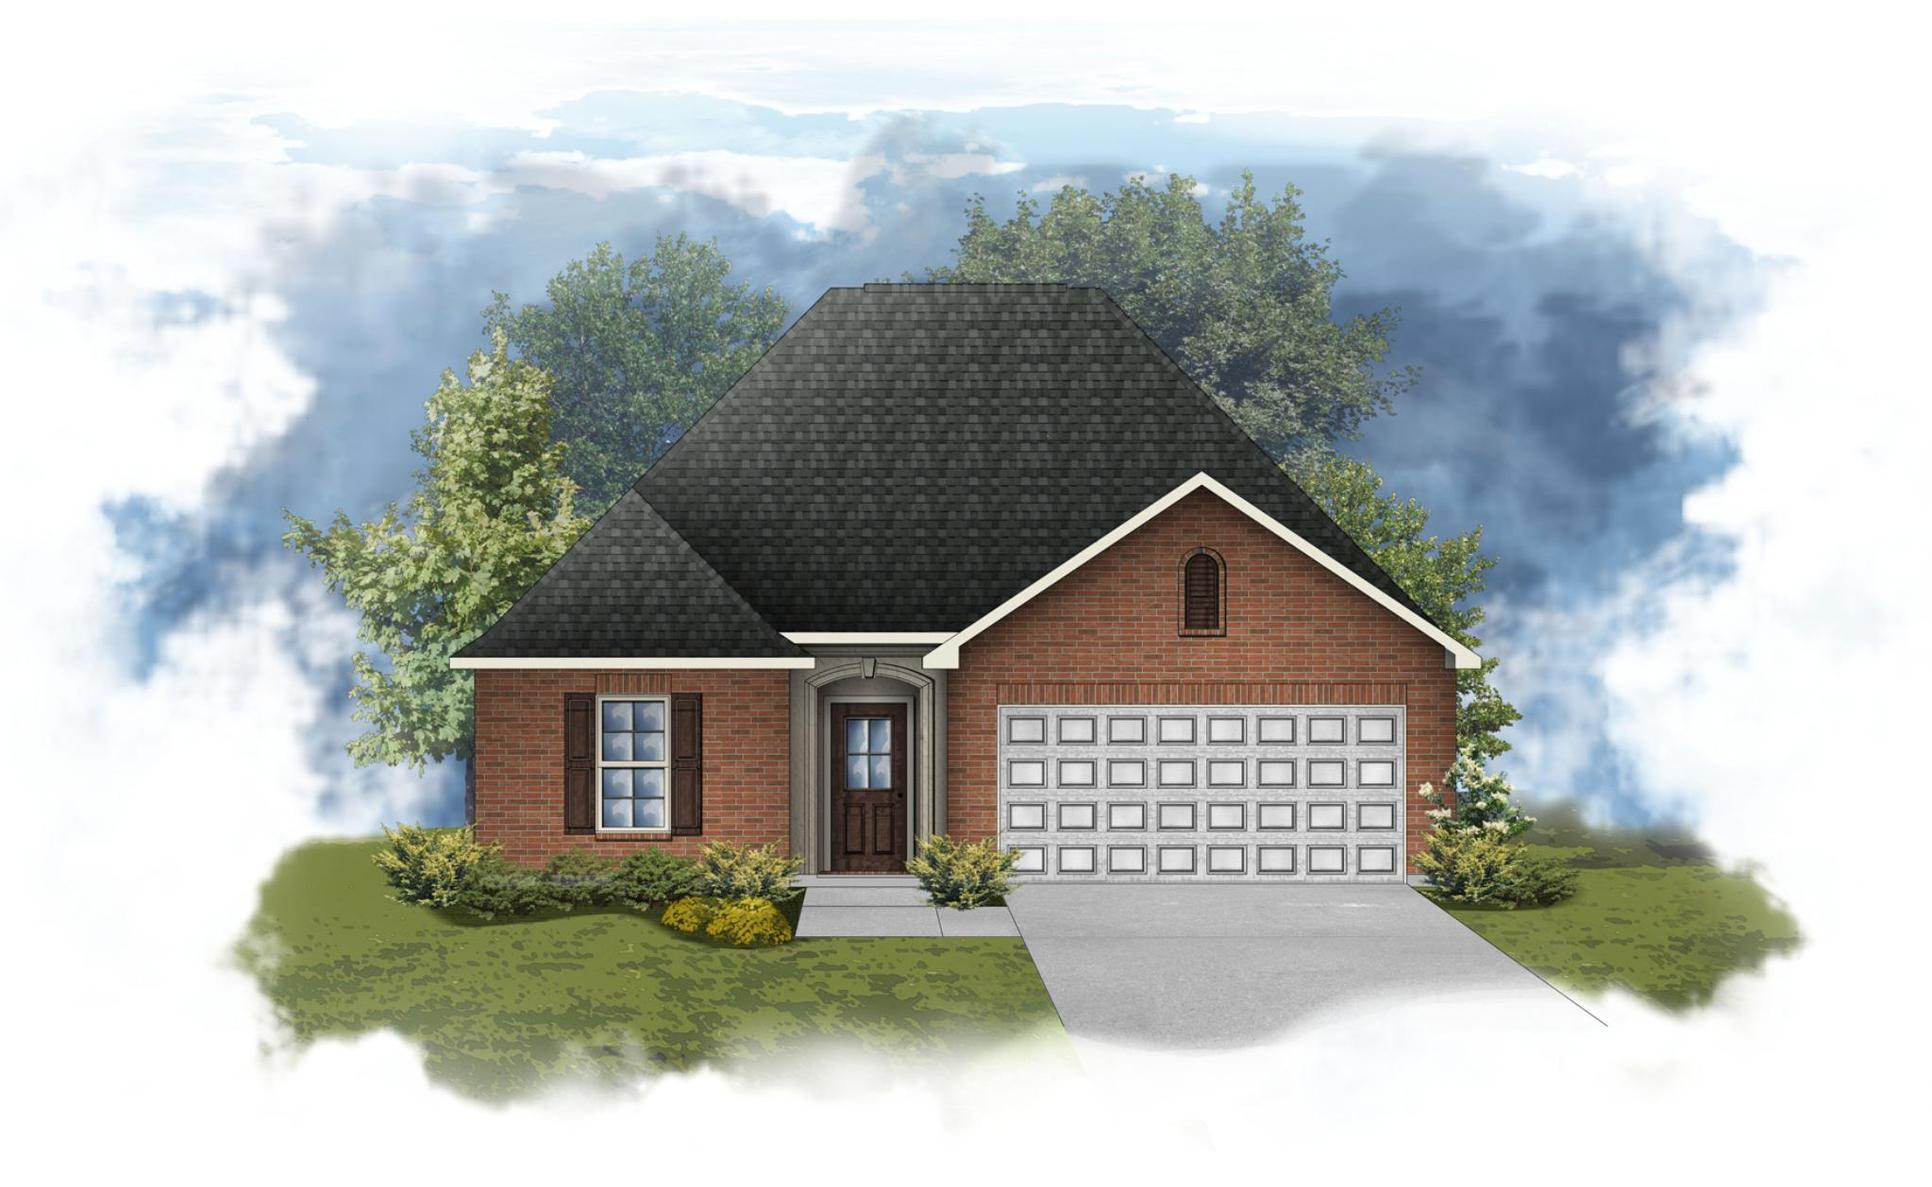 Cezanne III A - Open Floor Plan - DSLD Homes:Chantilly III A - Open Floor Plan - DSLD Homes